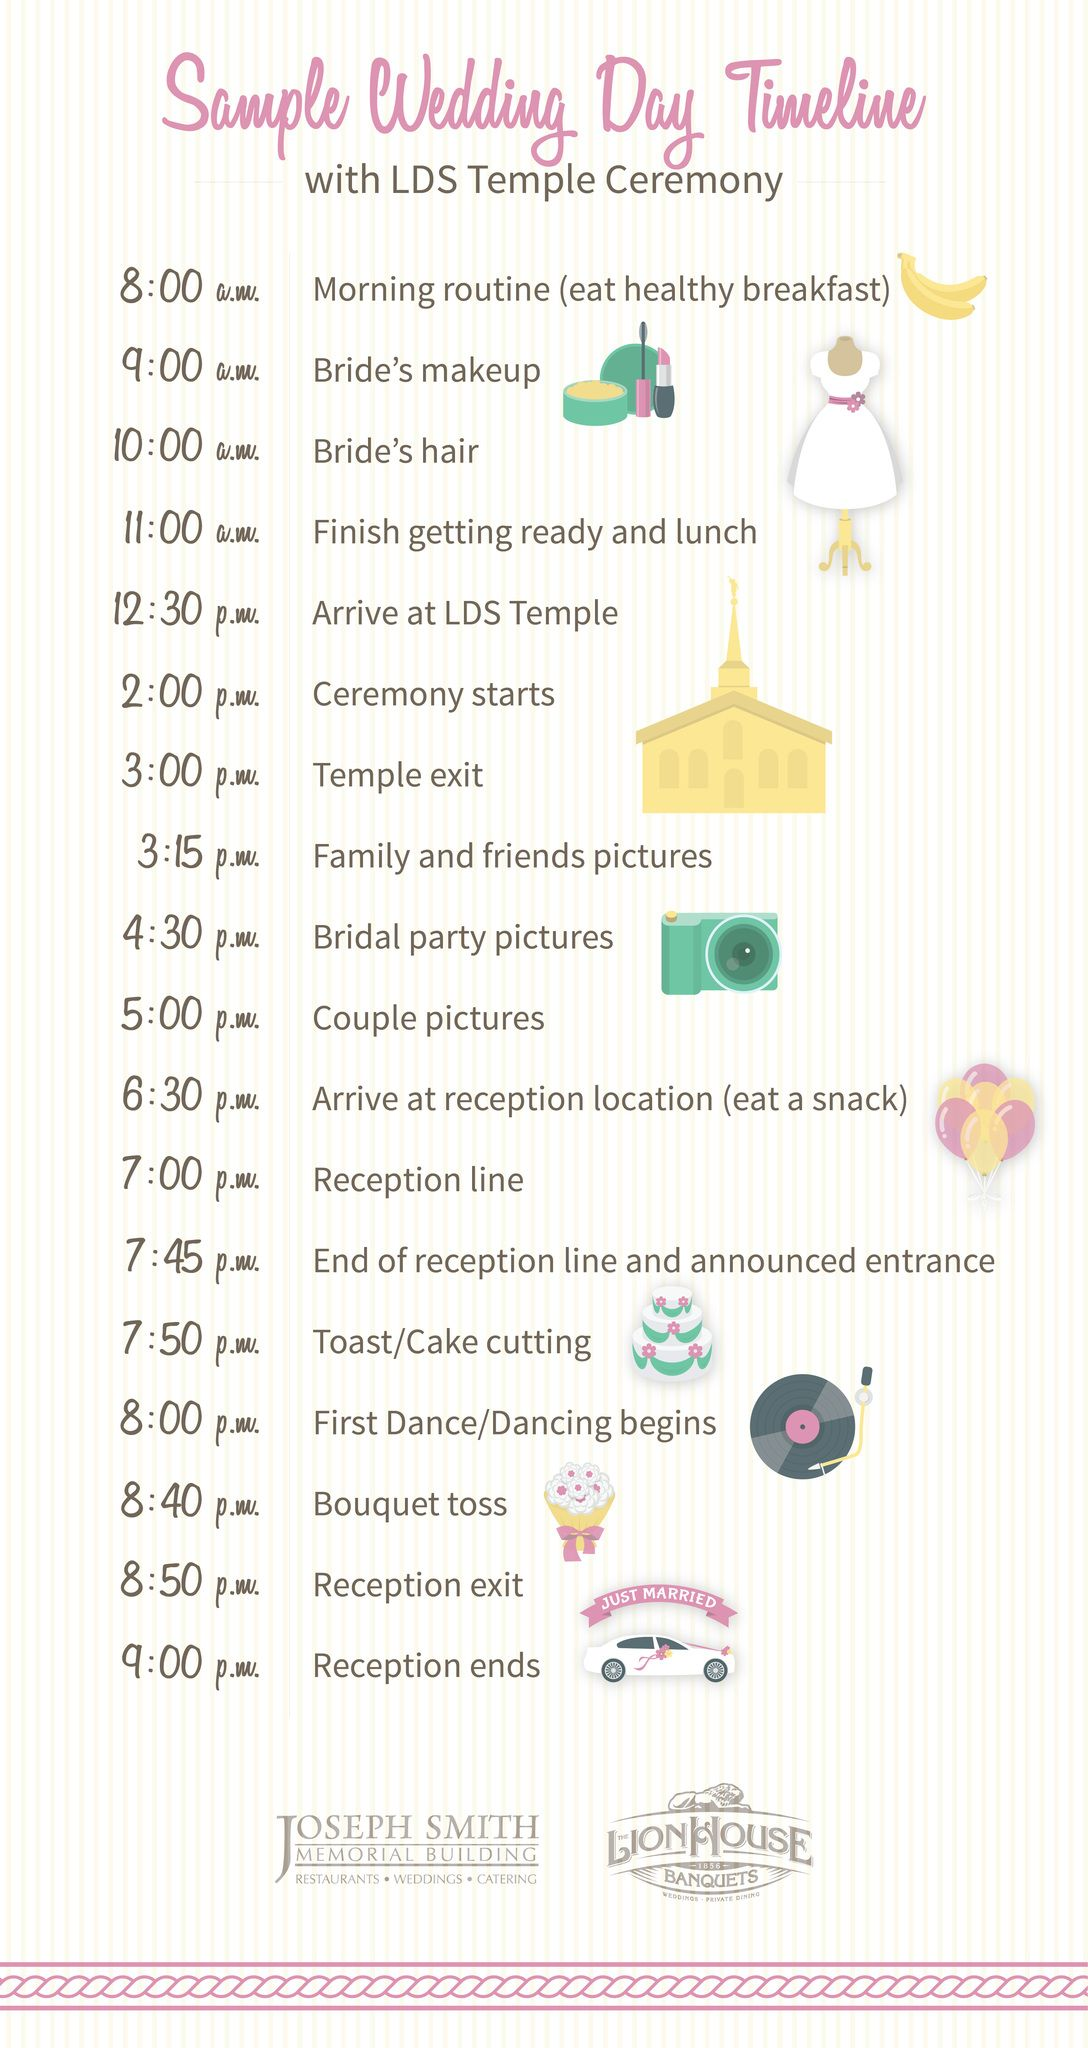 How to Build Your Wedding Day Timeline | Wedding day timeline ...